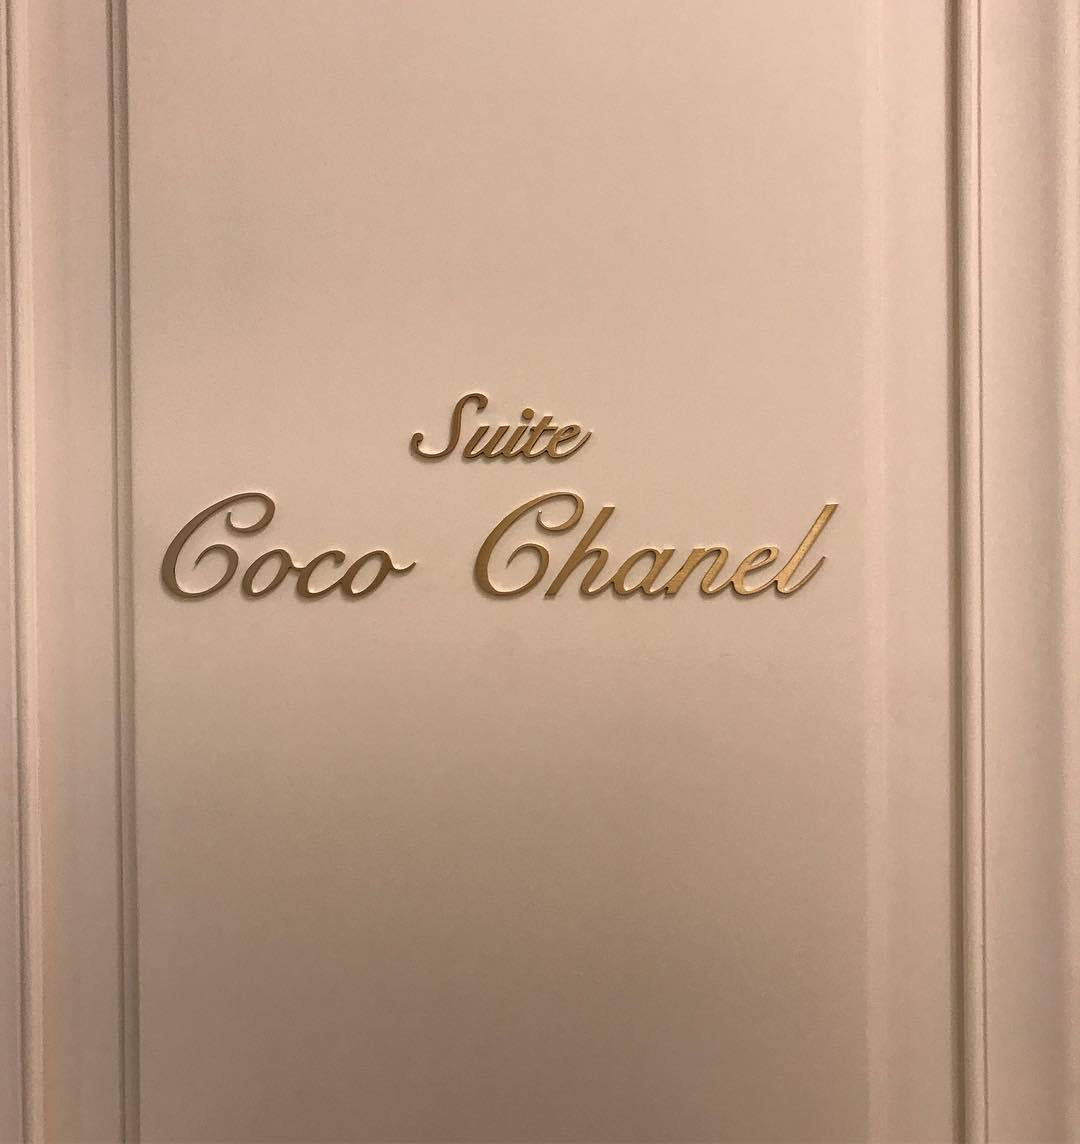 chanel, coco chanel, and suite image